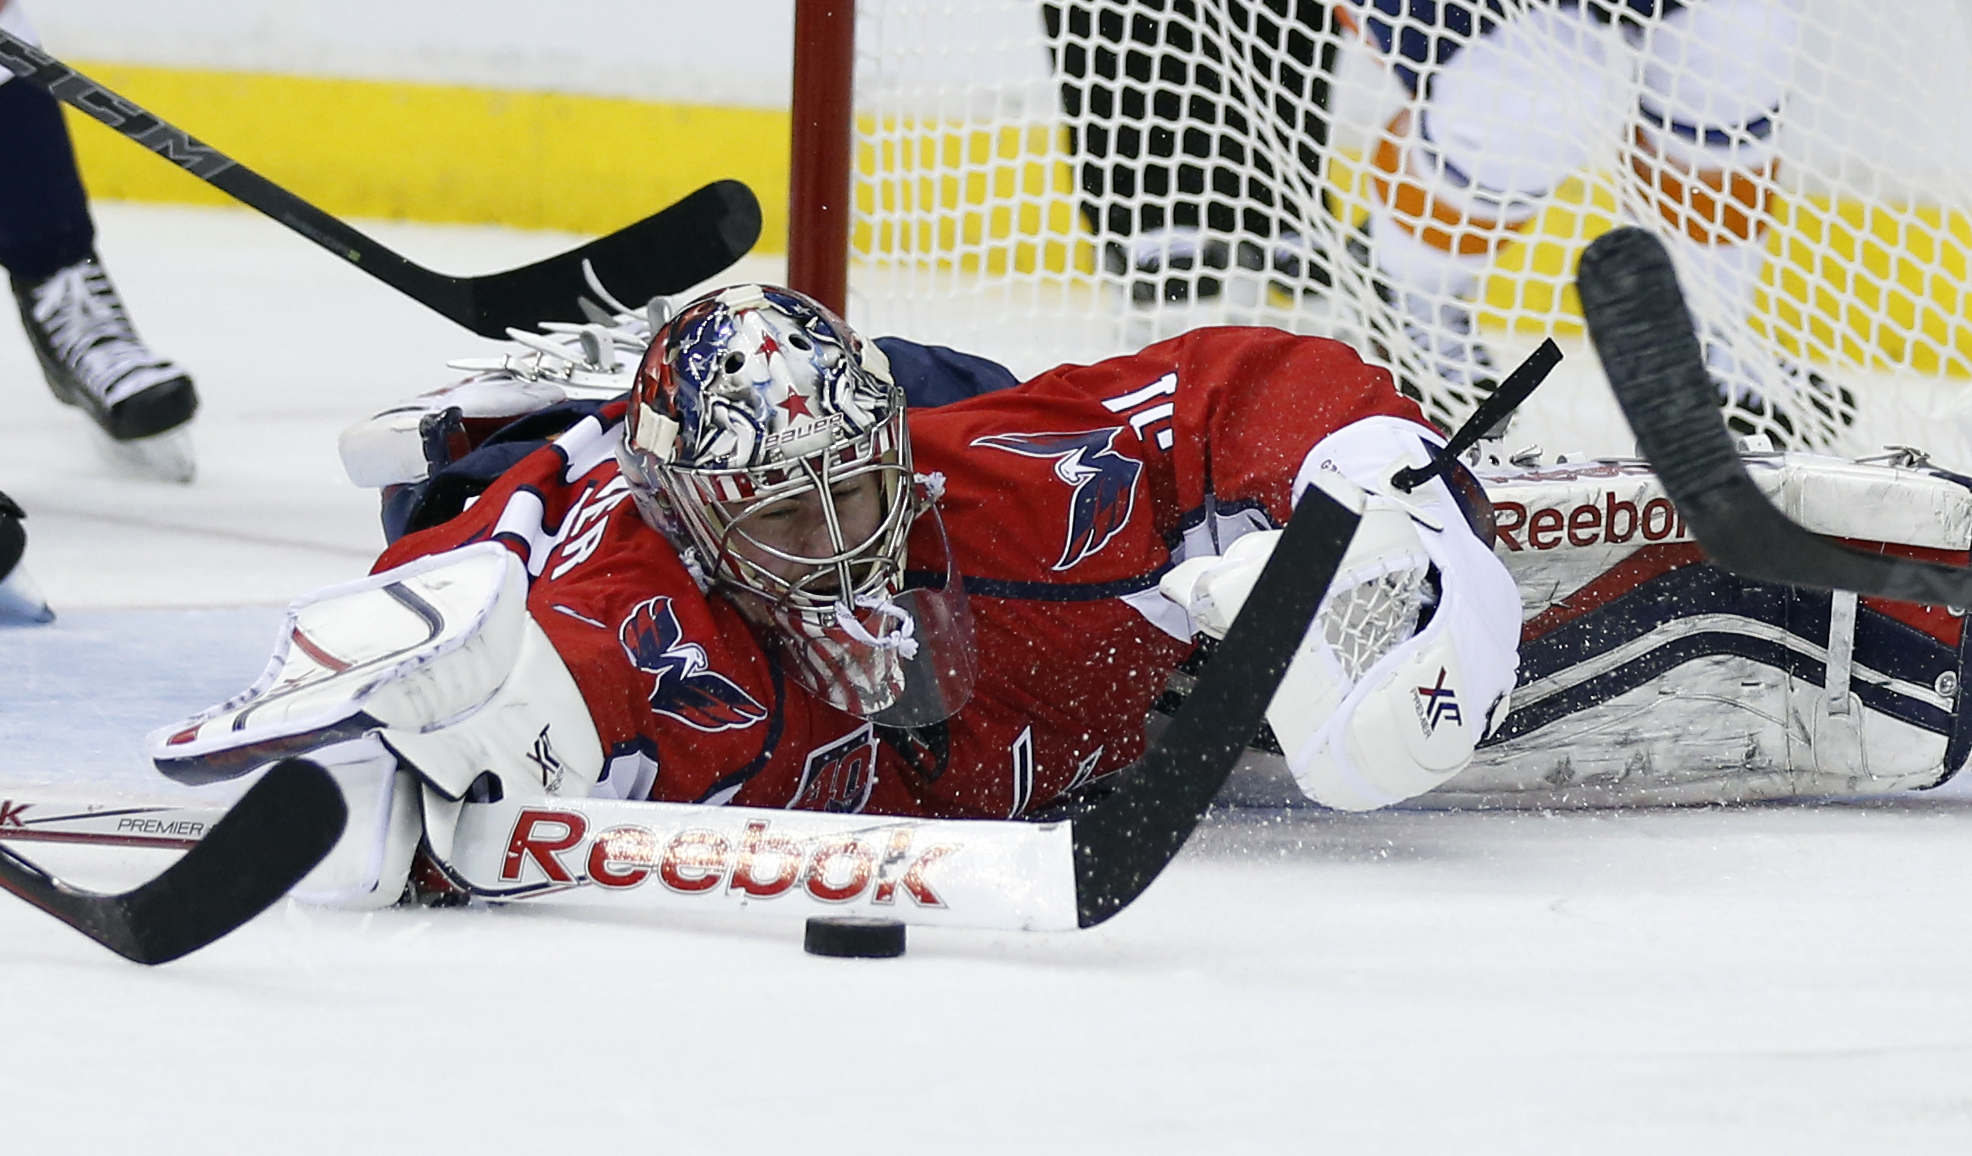 against the Washington Capitals goalie Philipp Grubauer, from Germany, lunges to knock the puck away during the second period of Game 2 against the New York Islanders in a first-round NHL hockey playoff series, Friday, April 17, 2015, in Washington. (AP P